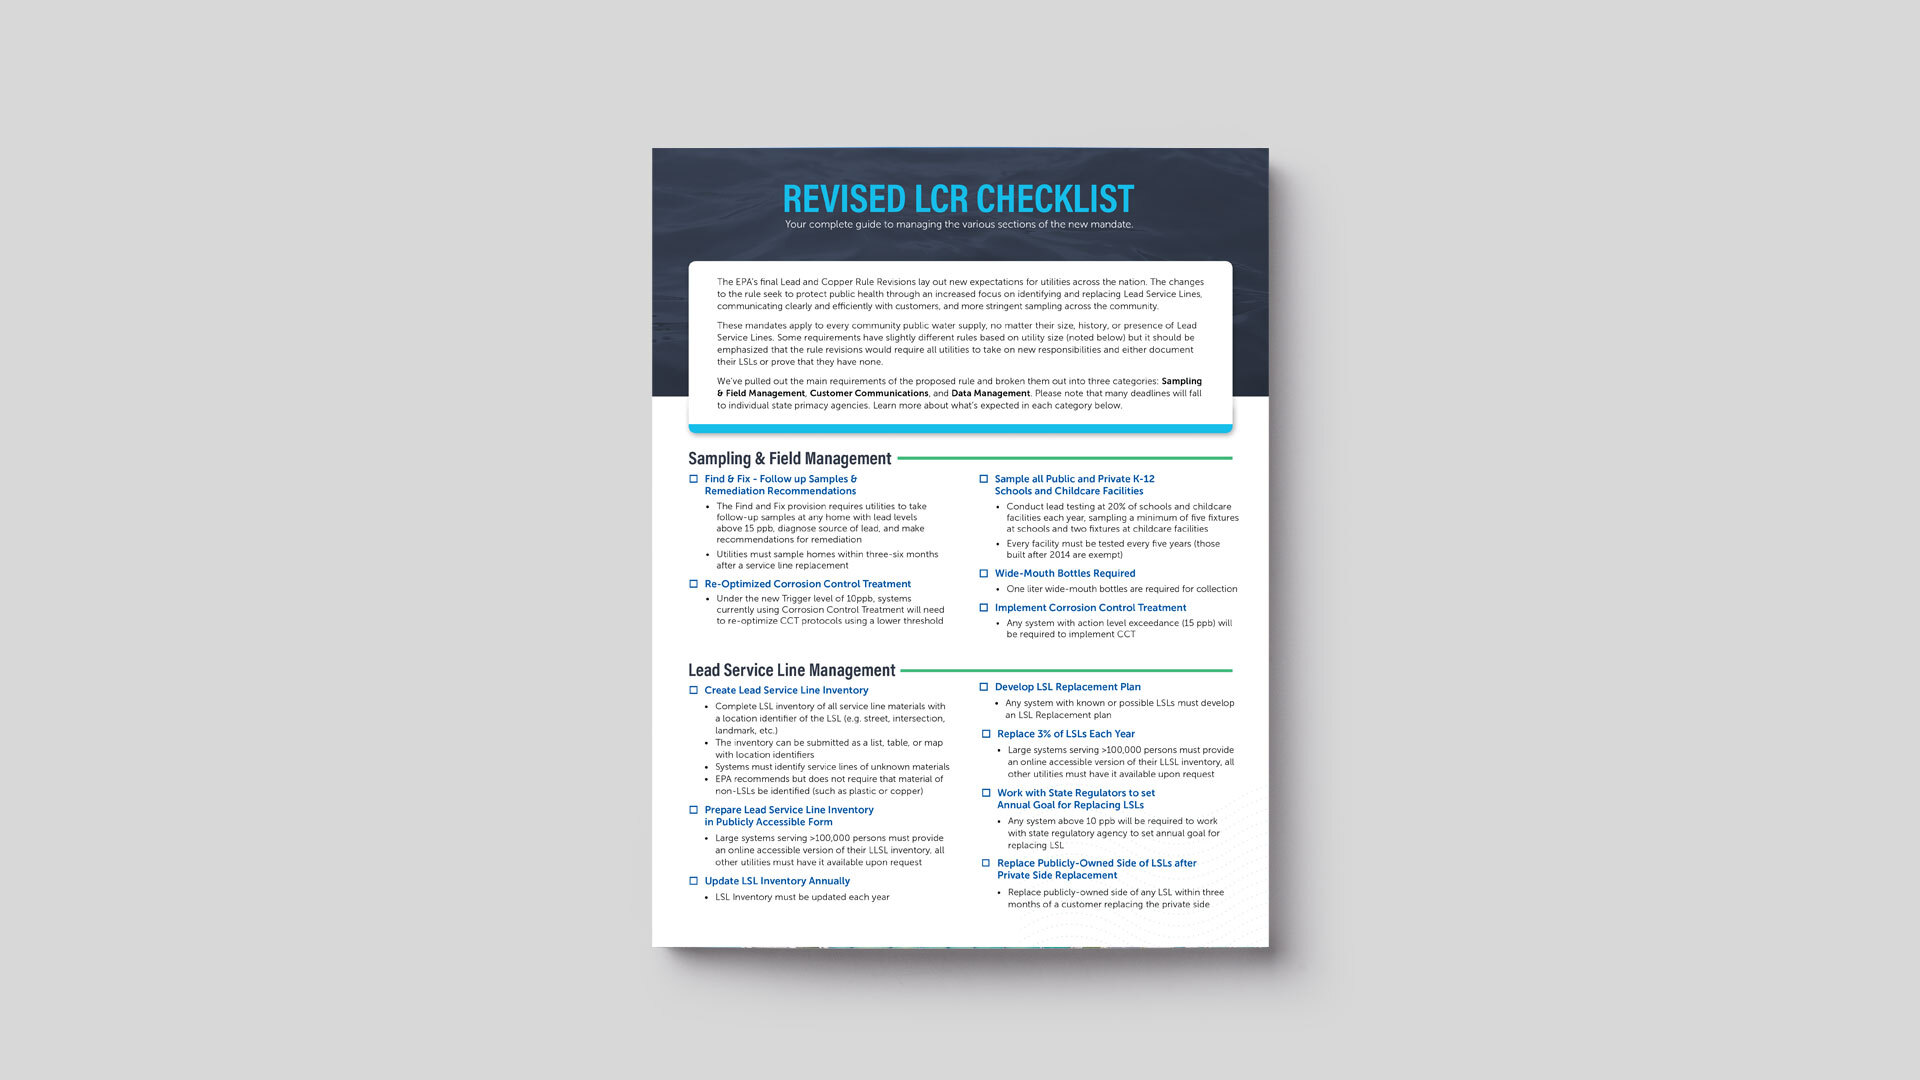 [Guide] Revised LCR Checklist